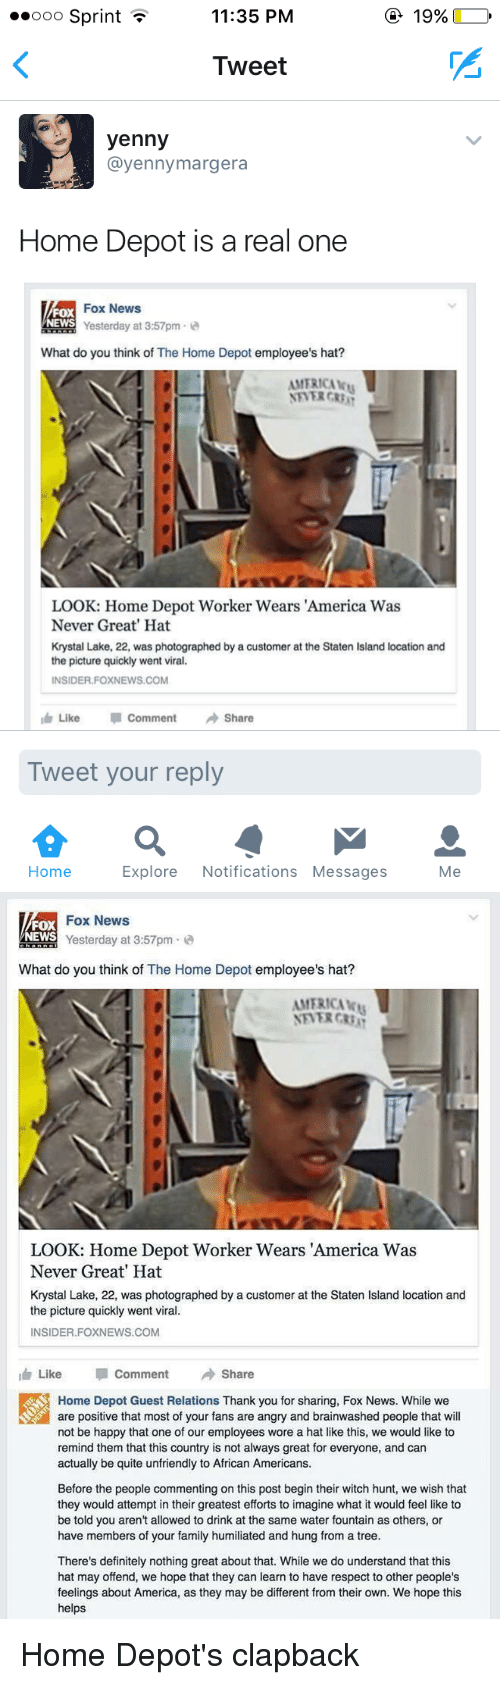 America, Blackpeopletwitter, and Definitely: 11:35 PM  ooo Sprint  19%  Tweet  yenny  ayenny margera  Home Depot is a real one  Fox News  Yesterday at 3:57pm  2  What do you think of The Home Depot  employee's hat?  AMERICA ku  LOOK: Home Depot Worker Wears America Was  Never Great' Hat  Krystal Lake, 22, was photographed by a customer at the Staten Island location and  the picture quickly went viral.  INSIDER FOXNEWS.COM  Like Comment  Share  Tweet your reply  Explore  Notifications Messages  Home  Me   Fox News  FOX  NEWS  Yesterday at 3:57pm  What do you think of The Home Depot  employee's hat?  AMERICA  NEVER CRB  LOOK: Home Depot Worker Wears America Was  Never Great' Hat  Krystal Lake, 22, was photographed by a customer at the Staten lsland location and  the picture quickly went viral.  INSIDER FOXNEWS COM  Like p Comment  Share  Home Depot Guest Relations Thank you for sharing, Fox News. While we  are positive that most of your fans are angry and brainwashed people that will  not be happy that one of our employees wore a hat like this, we would like to  remind them that this country is not always great for everyone, and can  actually be quite unfriendly to African Americans.  Before the people commenting on this post begin their witch hunt, we wish that  they would attempt in their greatest efforts to imagine what it would feel like to  be told you aren't allowed to drink at the same water fountain as others, or  have members of your family humiliated and hung from a tree.  There's definitely nothing great about that. While we do understand that this  hat may offend, we hope that they can learn to have respect to other people's  feelings about America, as they may be different from their own. We hope this  helps Home Depot's clapback